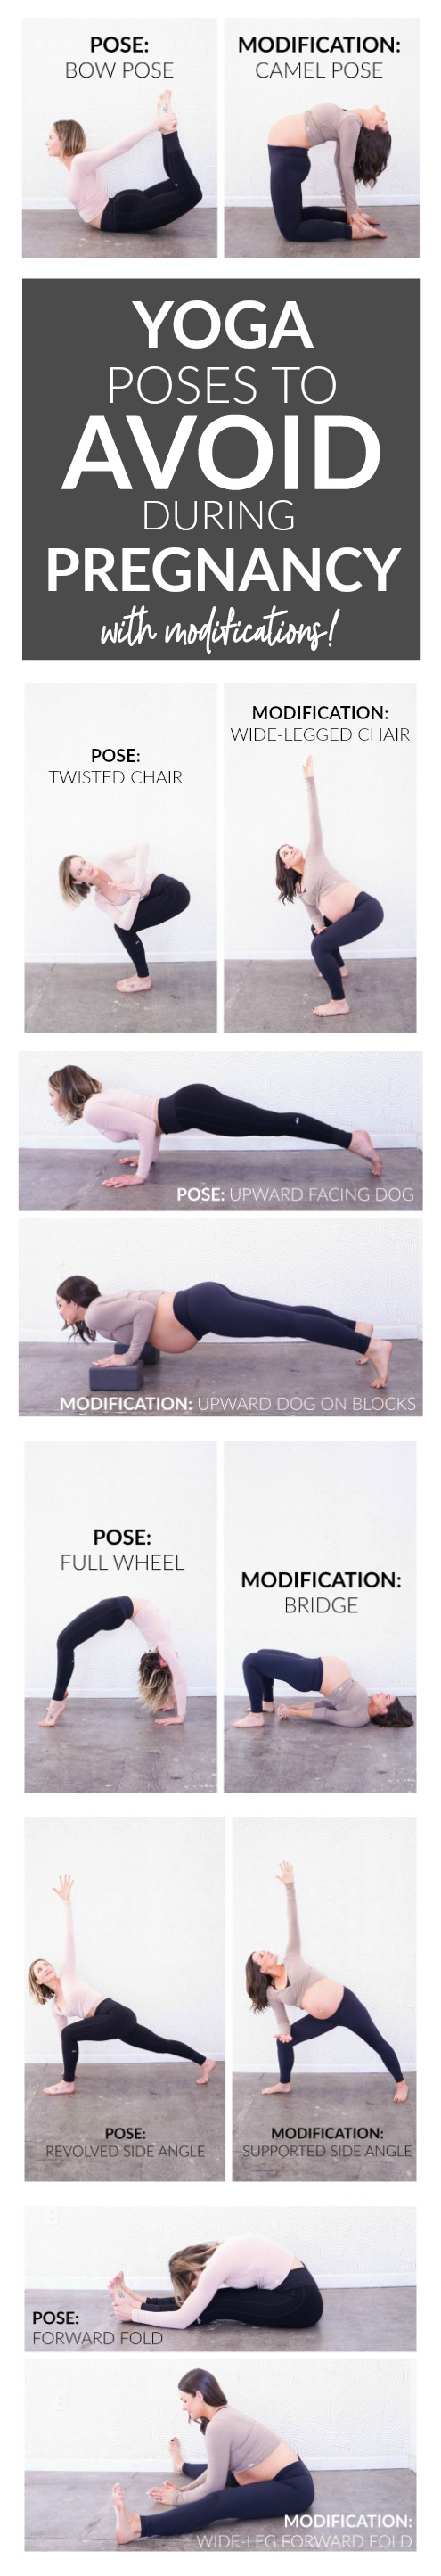 Yoga Poses To Avoid During Pregnancy With Modifications Whitney E Rd